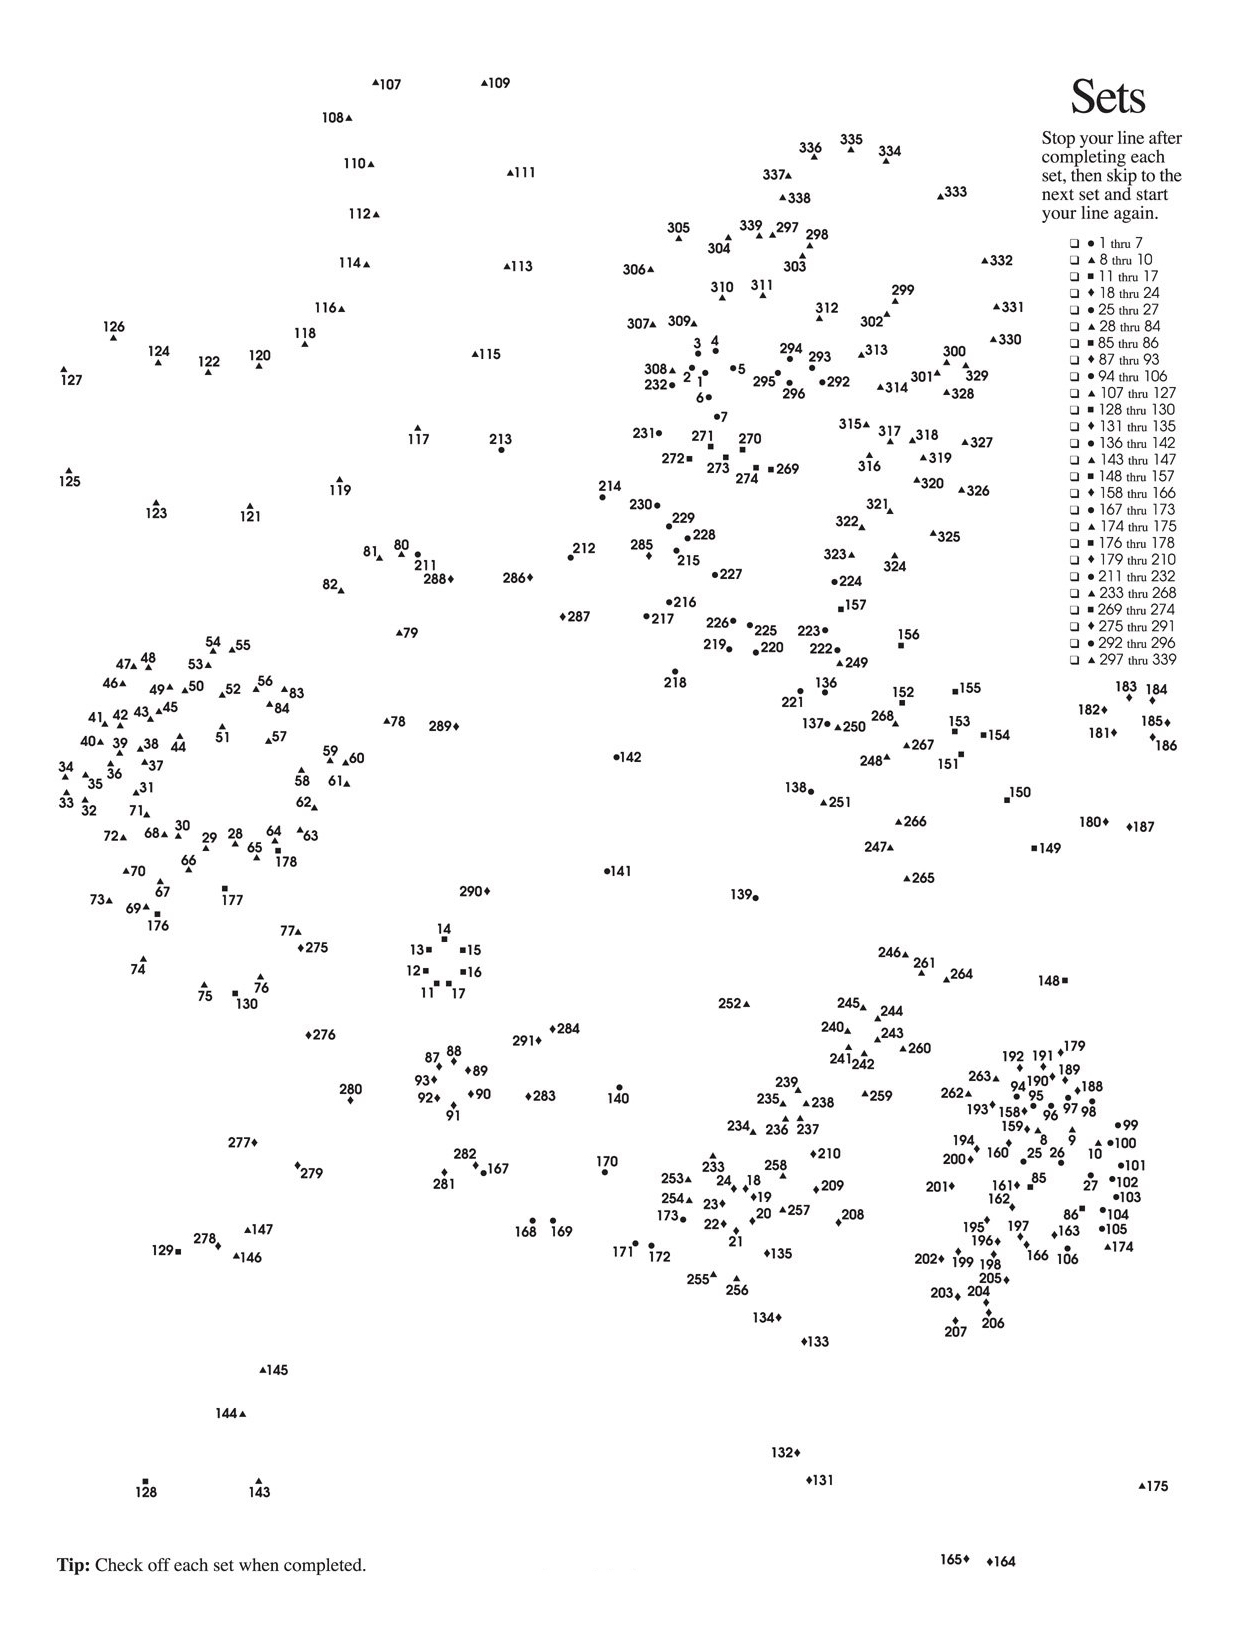 connect the dots extreme printable killer whale orca extreme dot to dot connect the dots connect dots the printable extreme